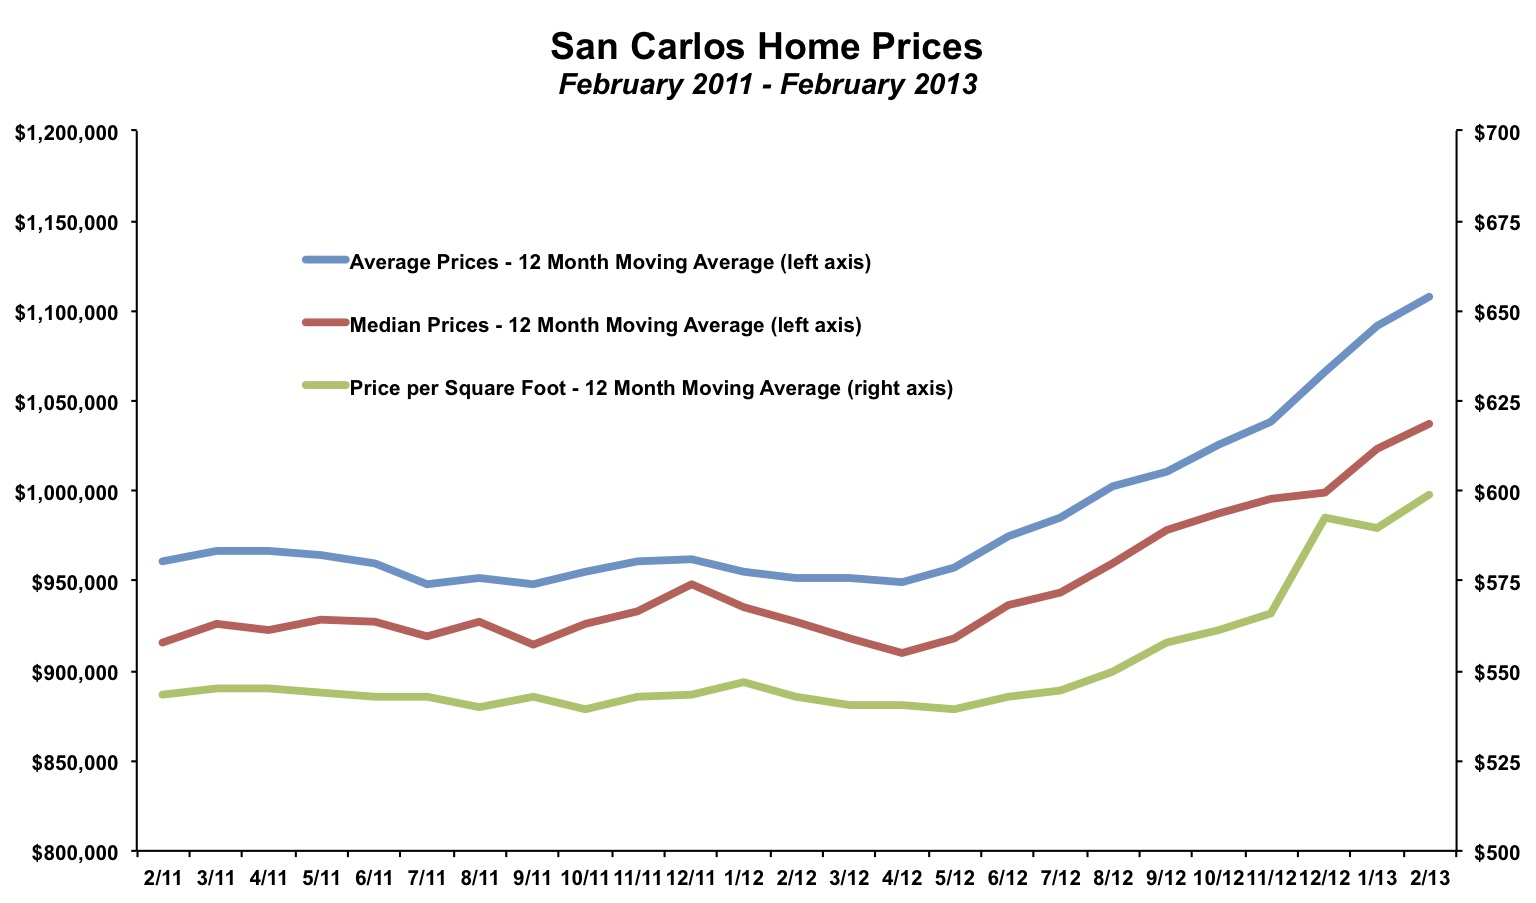 San Carlos Home Prices February 2013